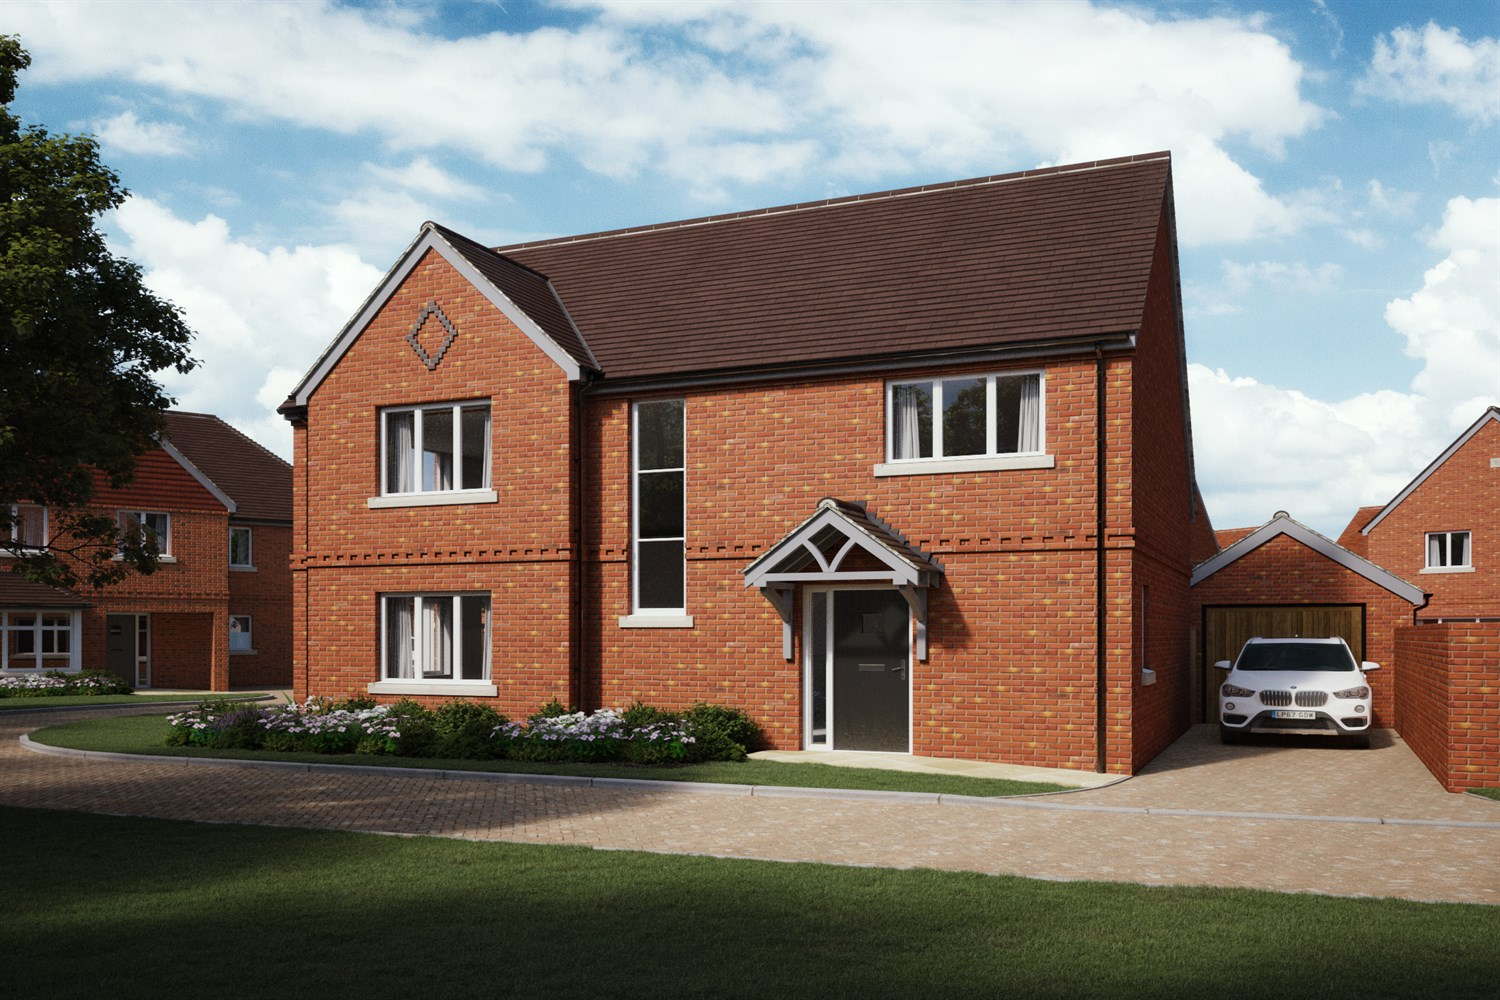 The Oakdale at Stoneham Park - 3 bed detached, Tilehurst, Reading RG31 5UG